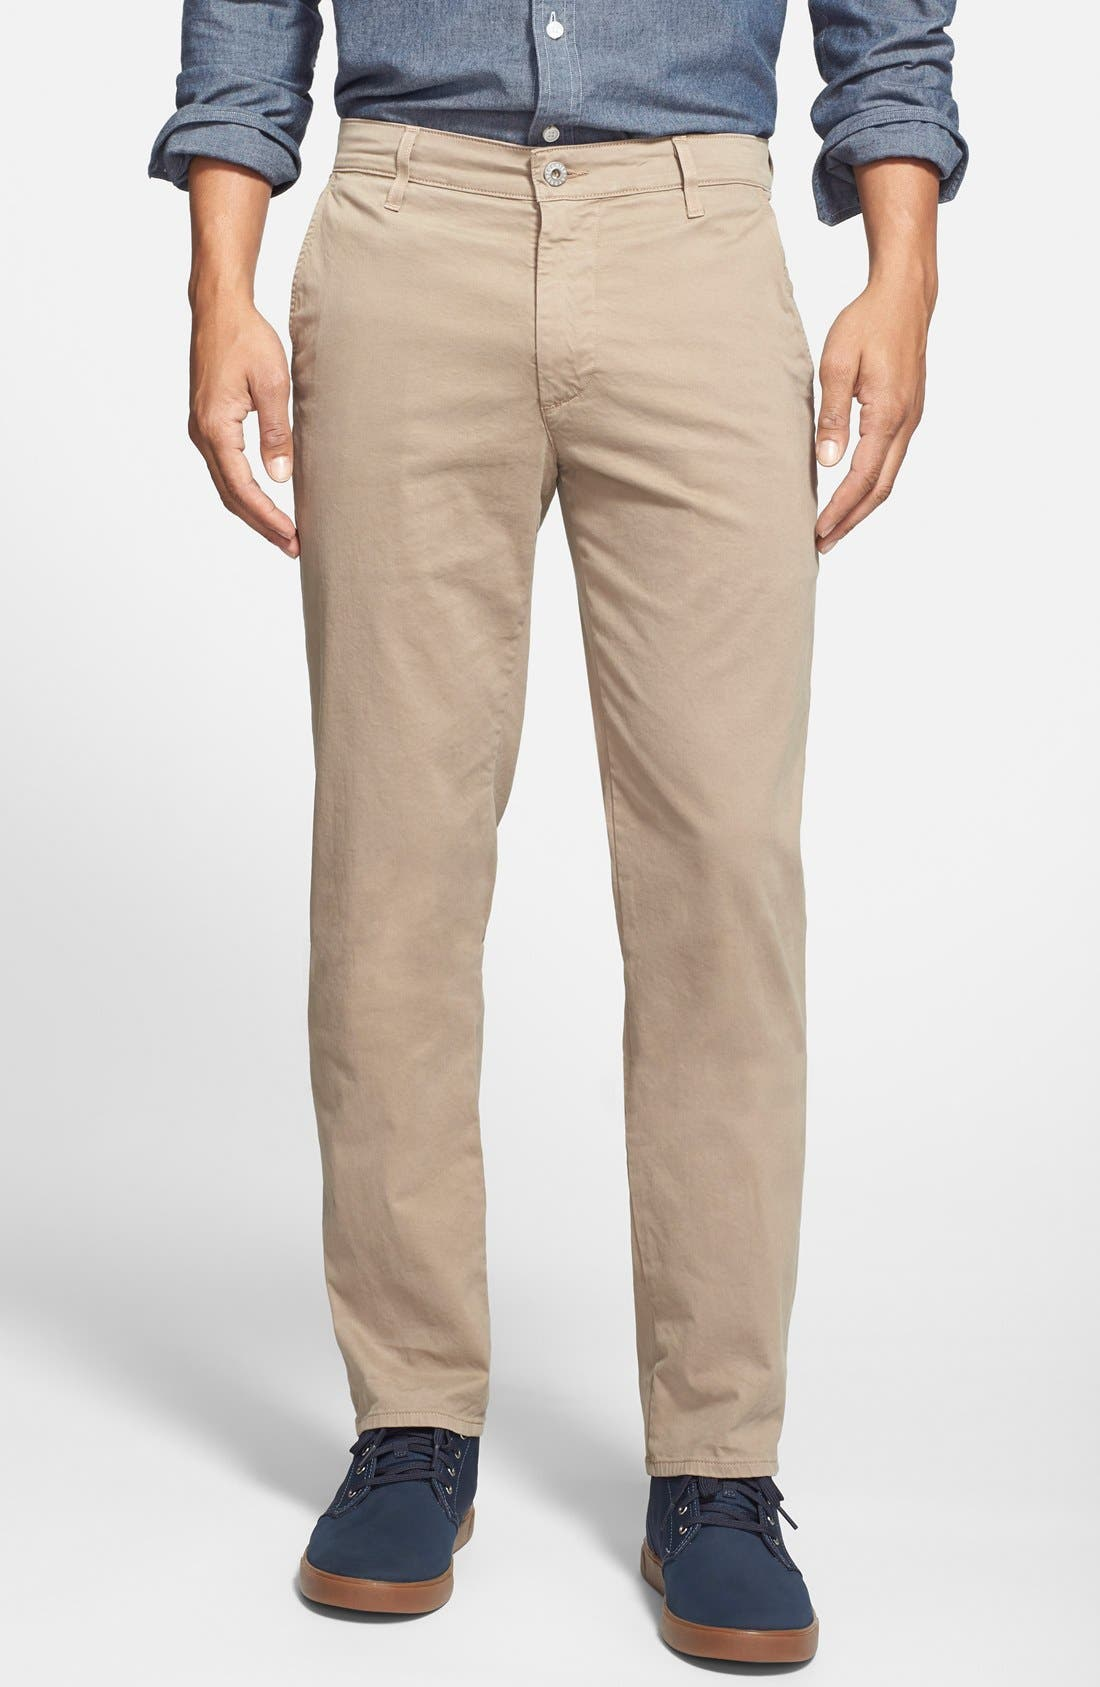 AG The Lux Tailored Straight Leg Chinos